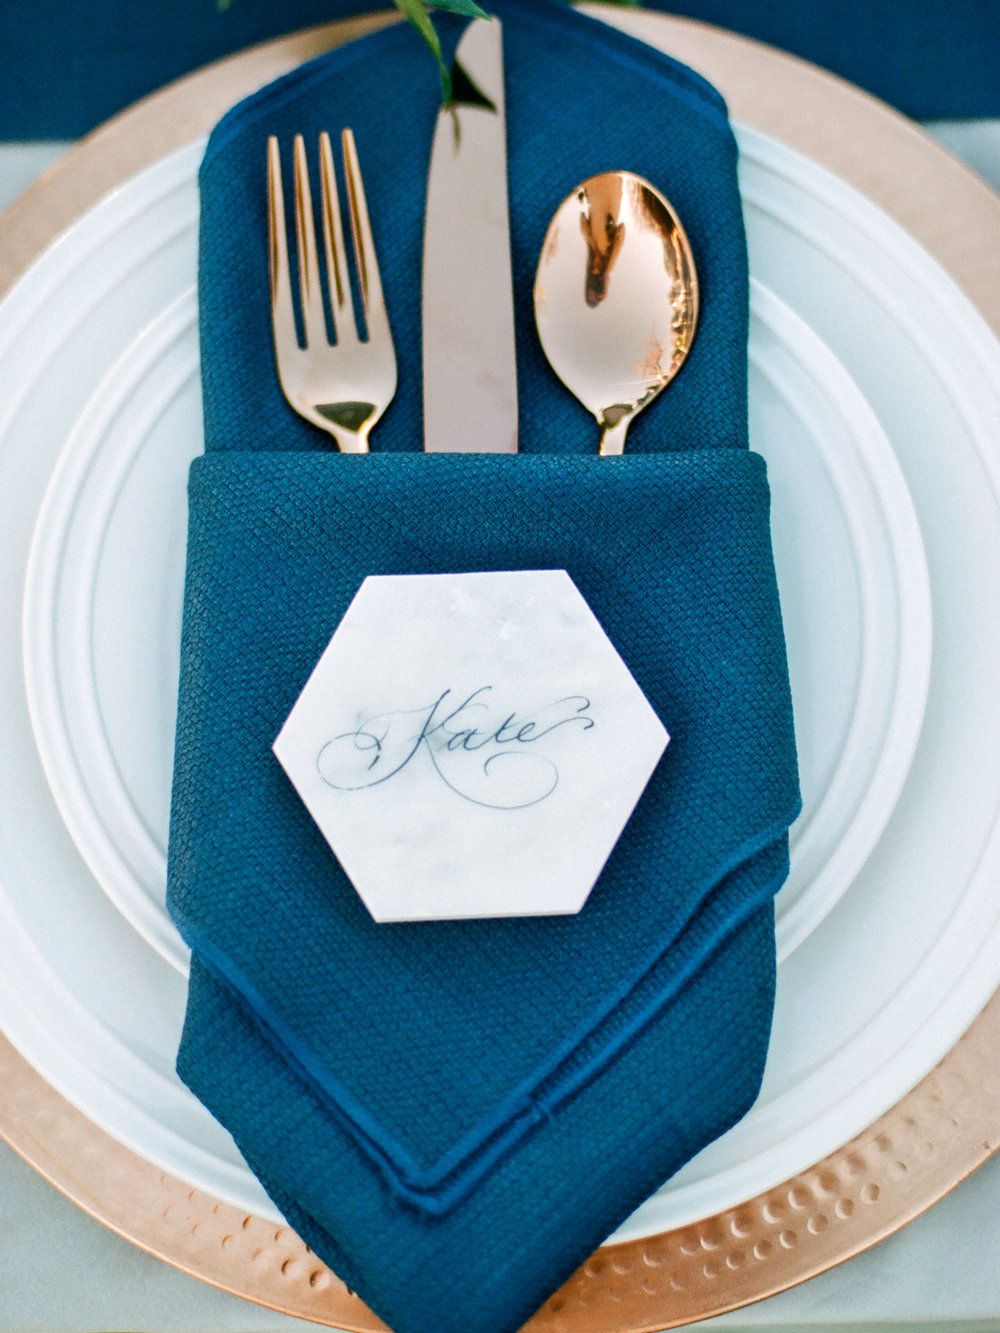 Escort Cards on Nontraditional Surfaces